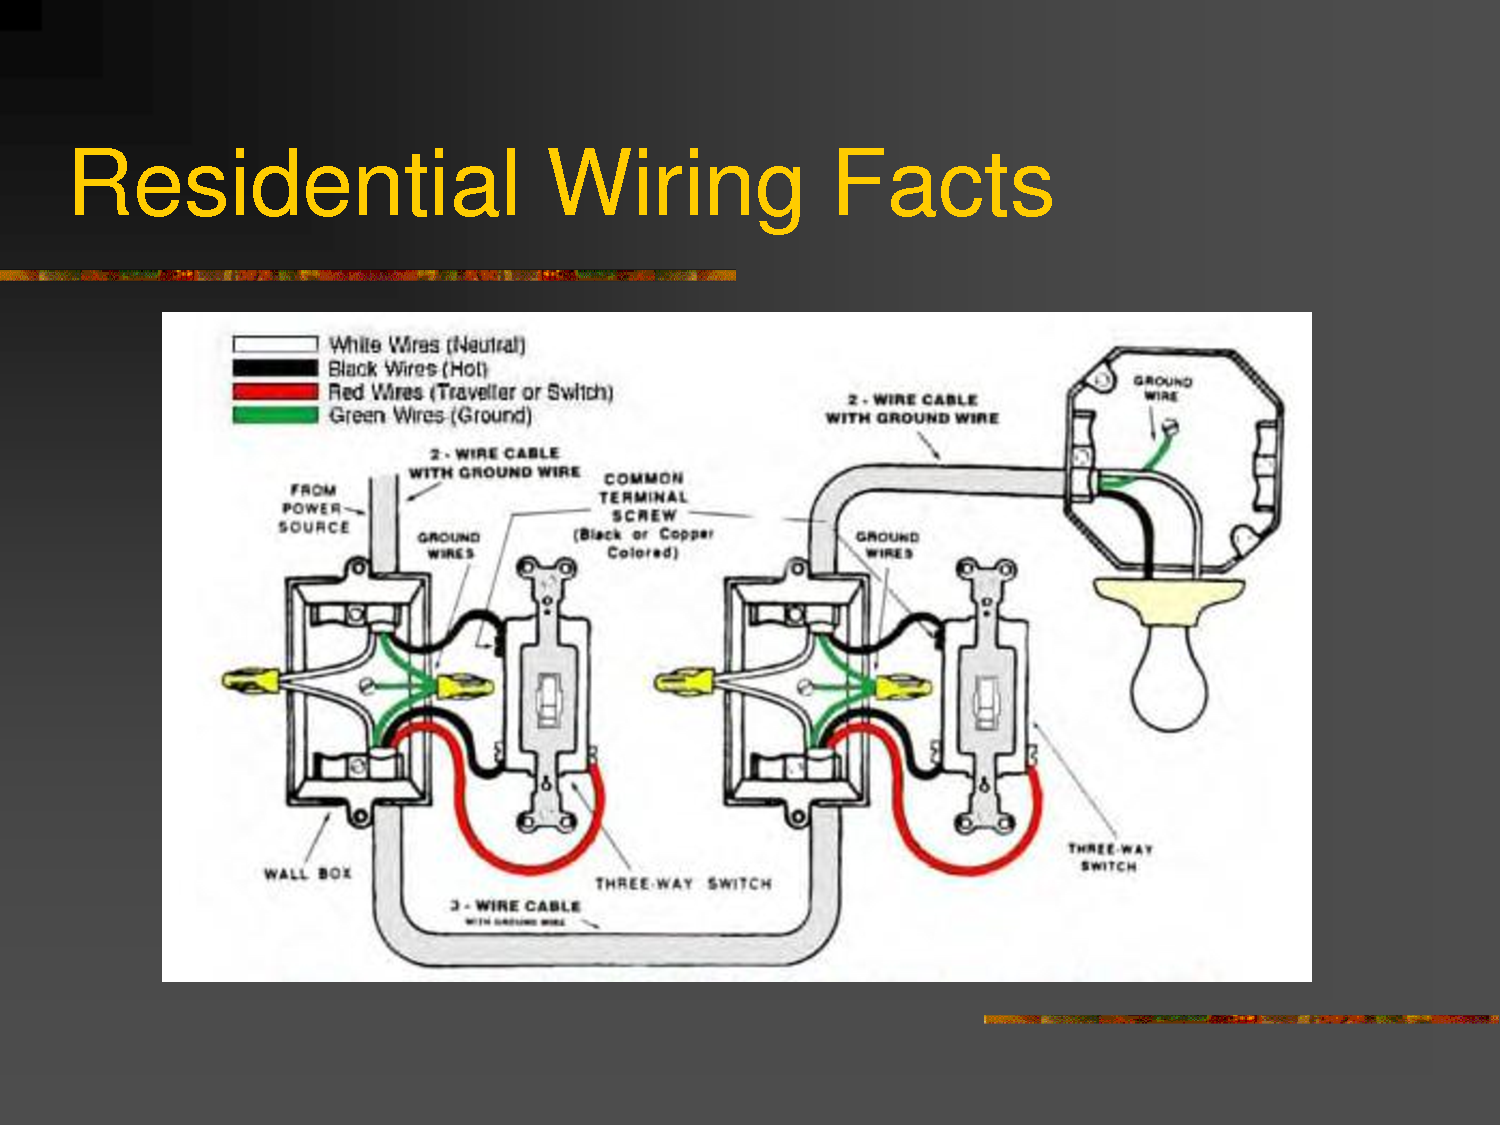 In Wall Wiring Diagram - Wiring Diagram Save Wall Volume Control Wiring Diagram on